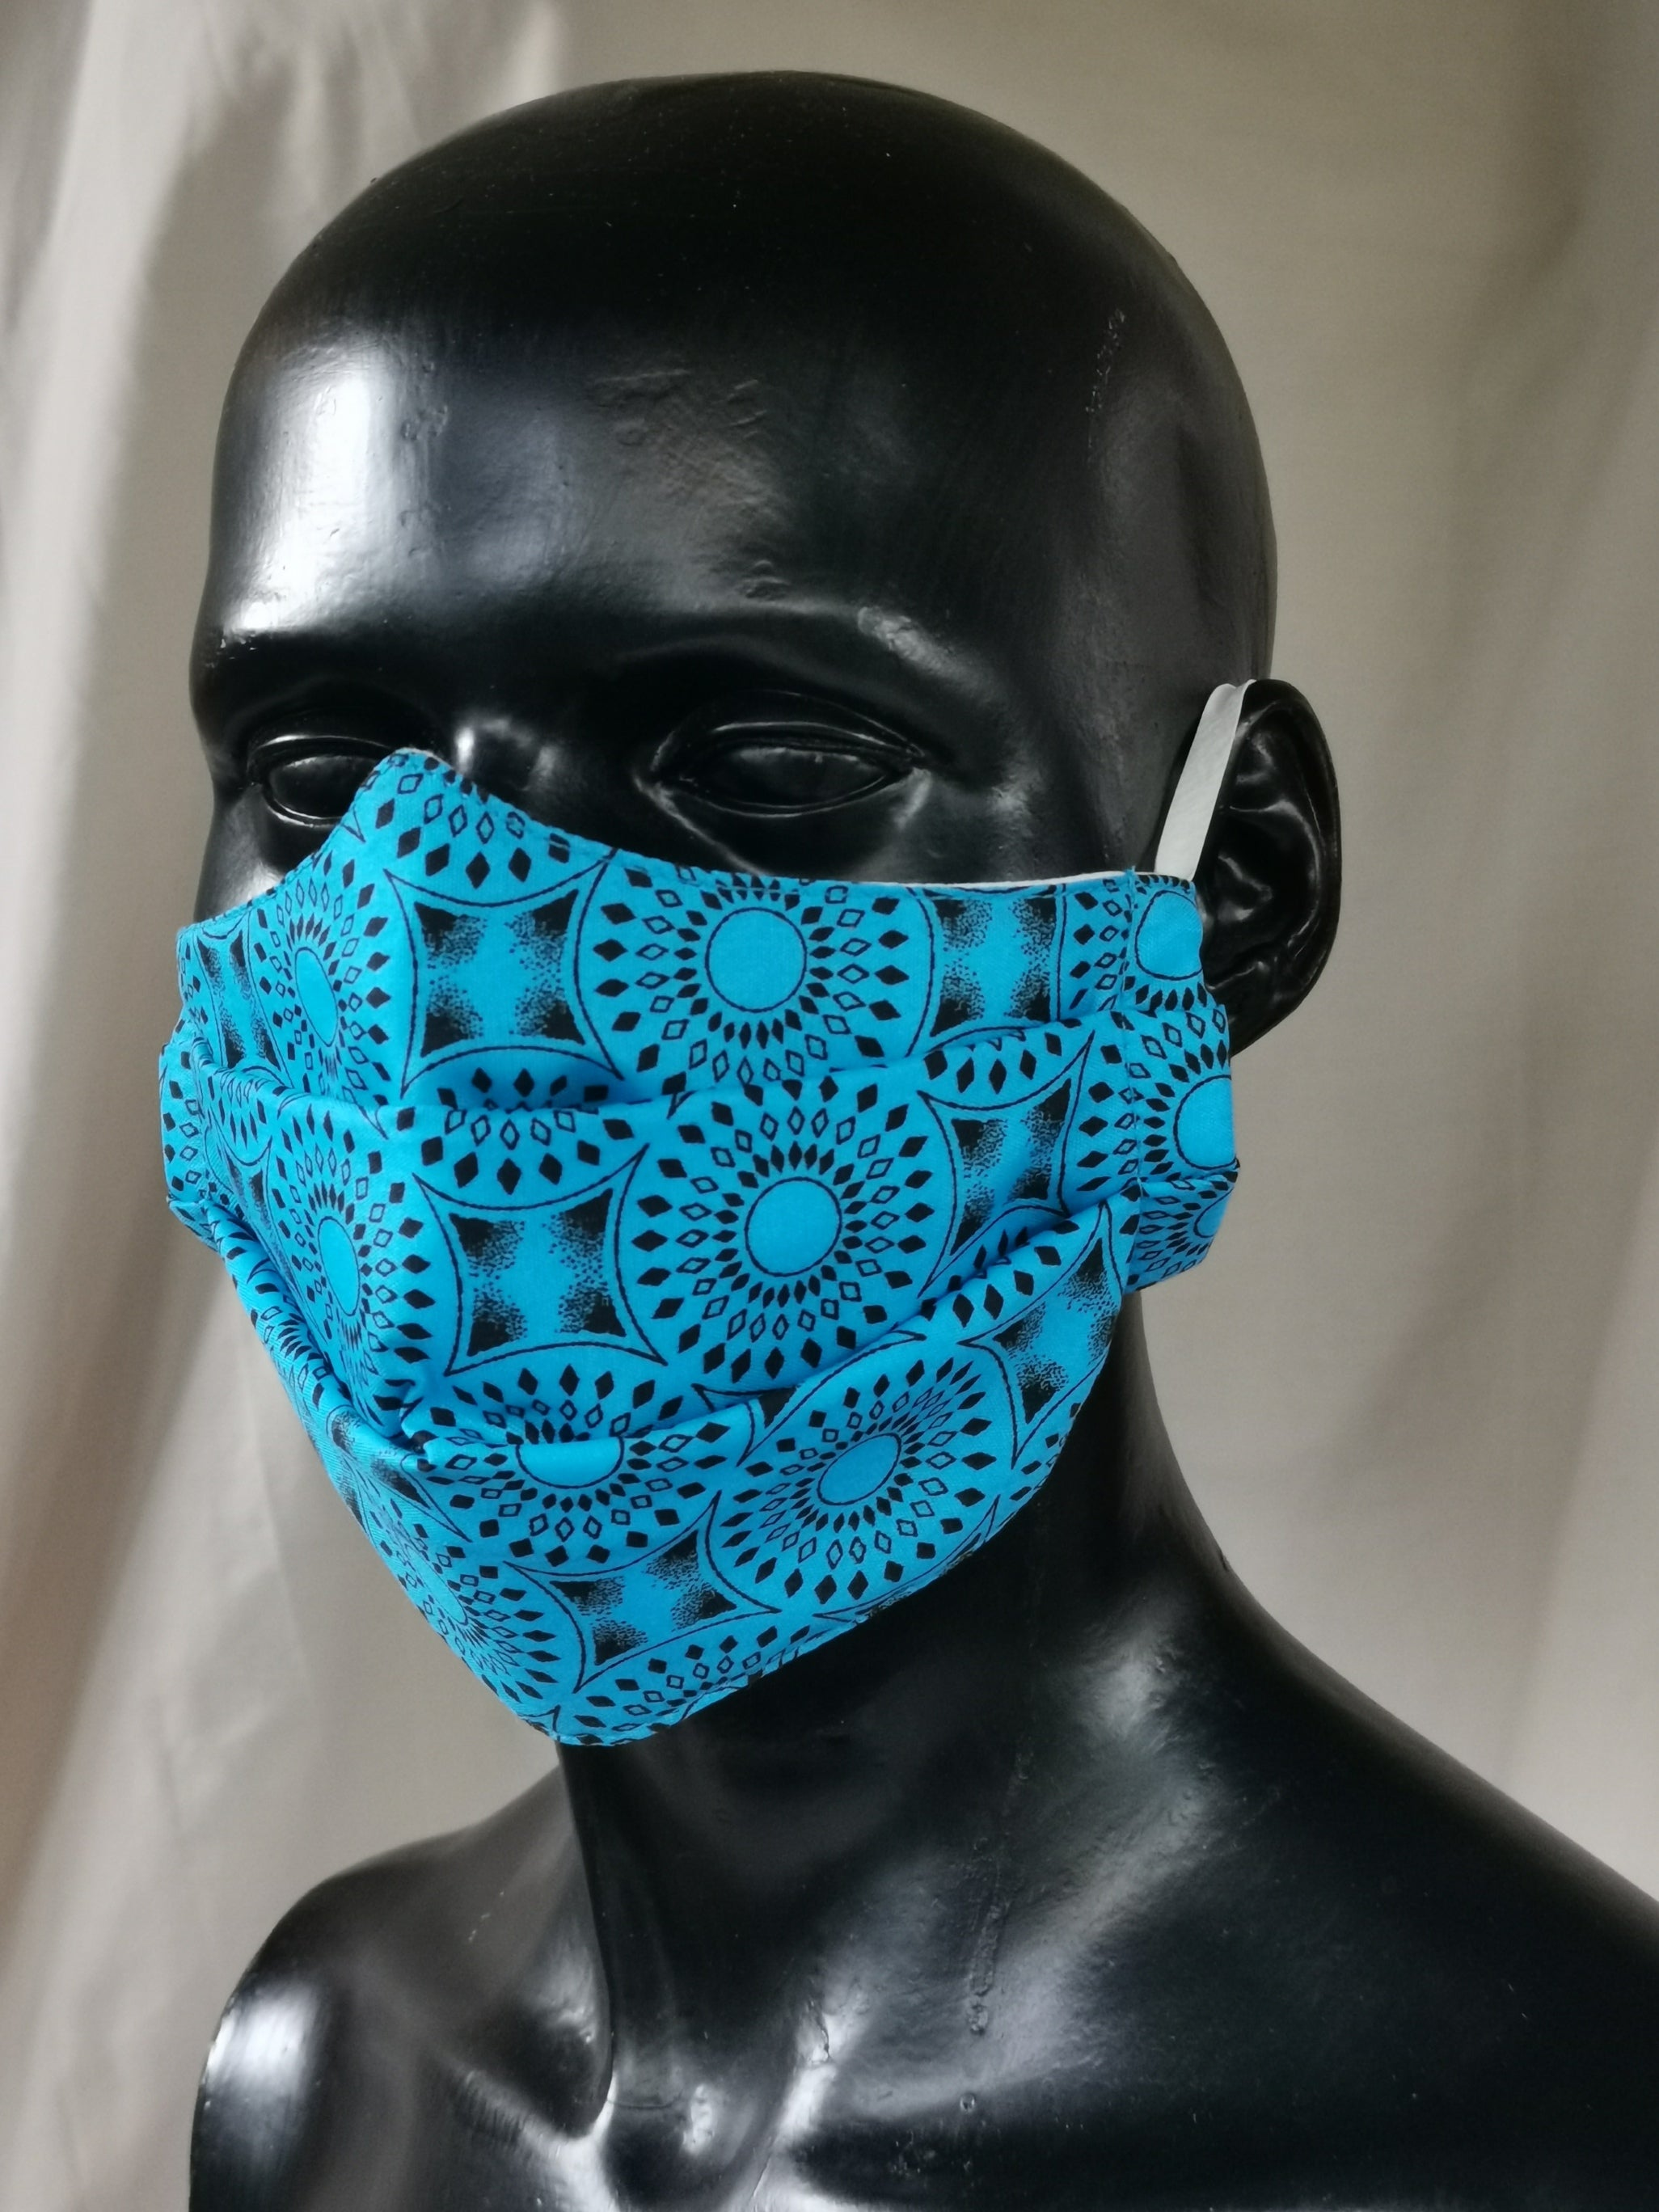 402 TYPE 1 Face mask - New Turk, Kids(S) and Adult Med